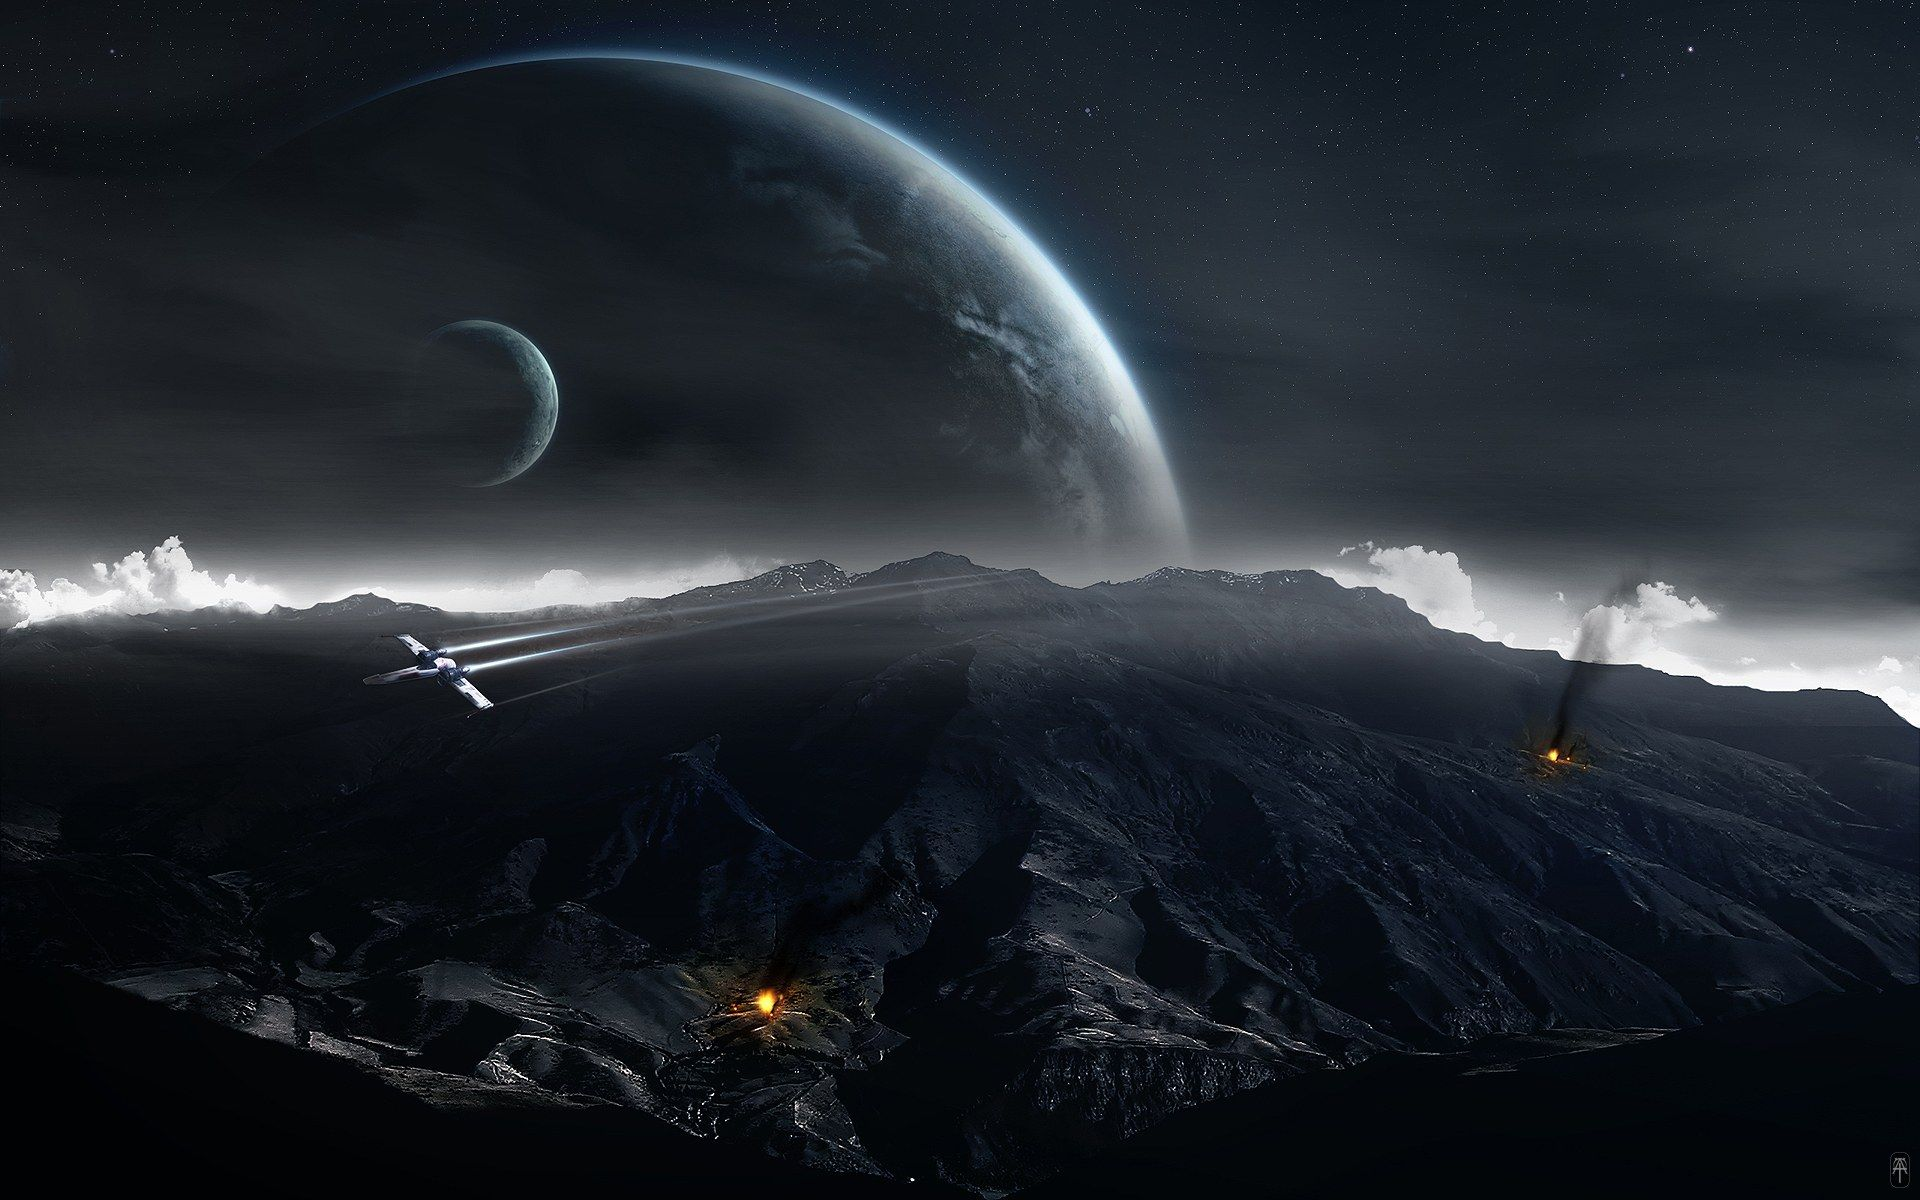 digital images | hd digital art of universe and planets 1920x1200